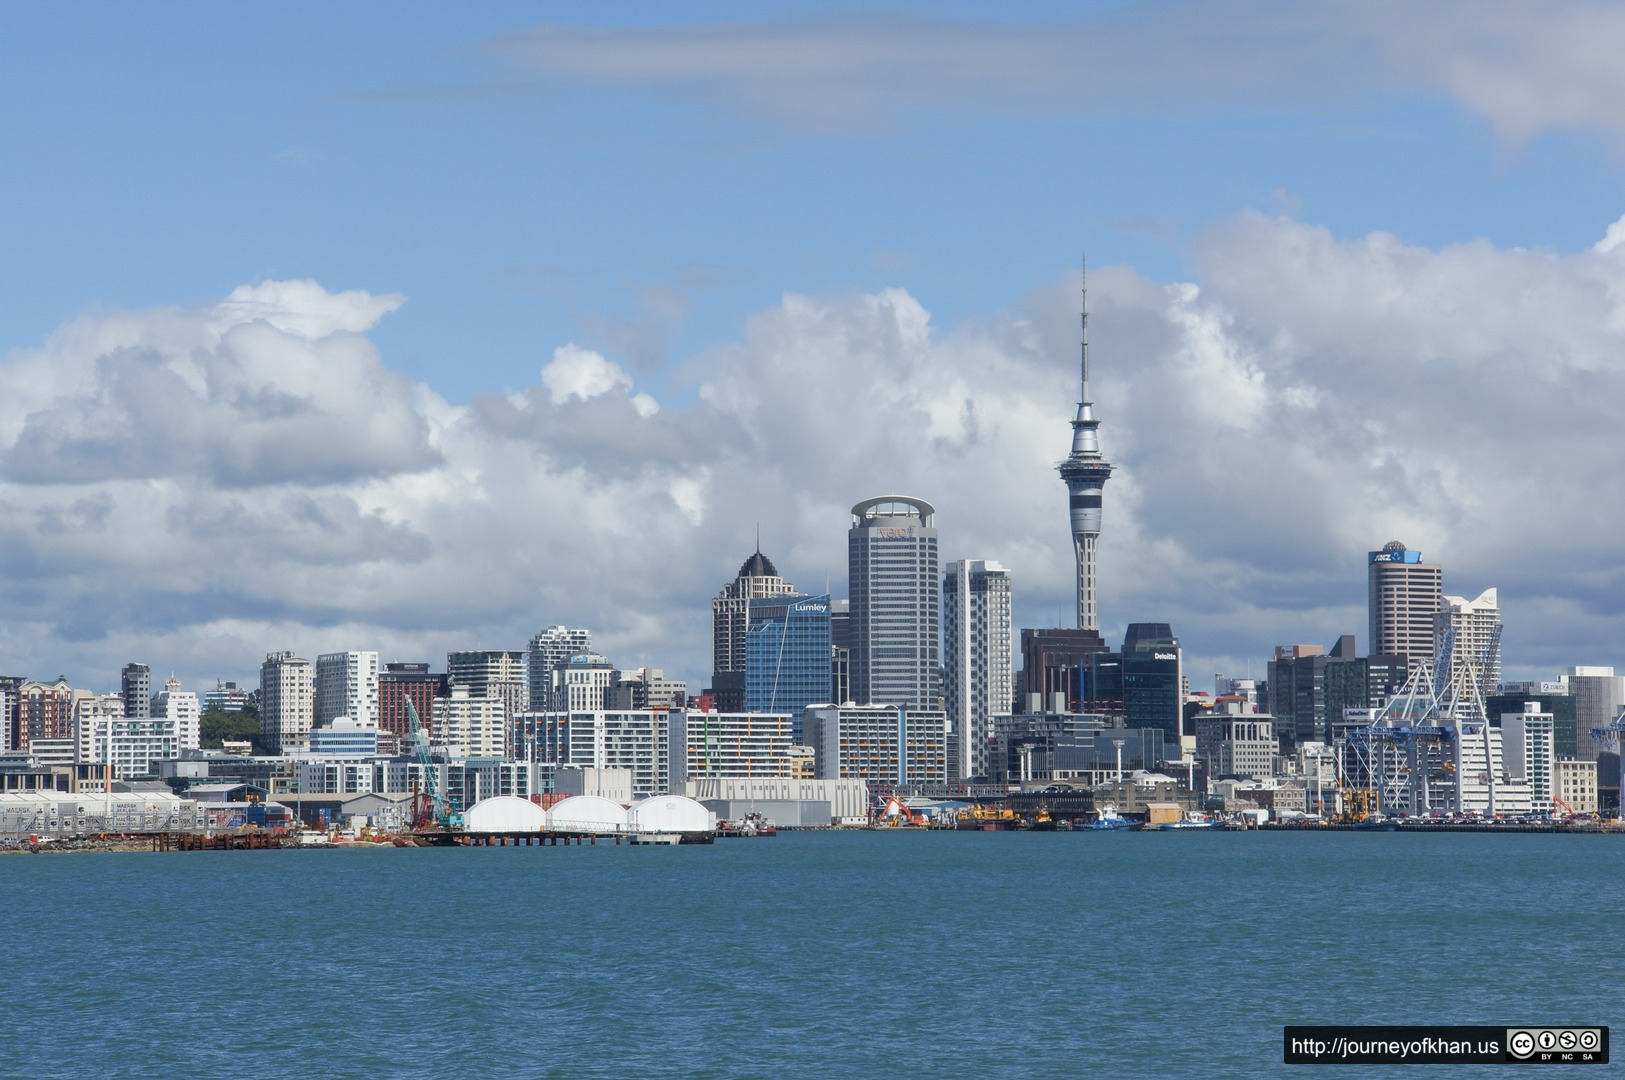 Auckland from a Boat